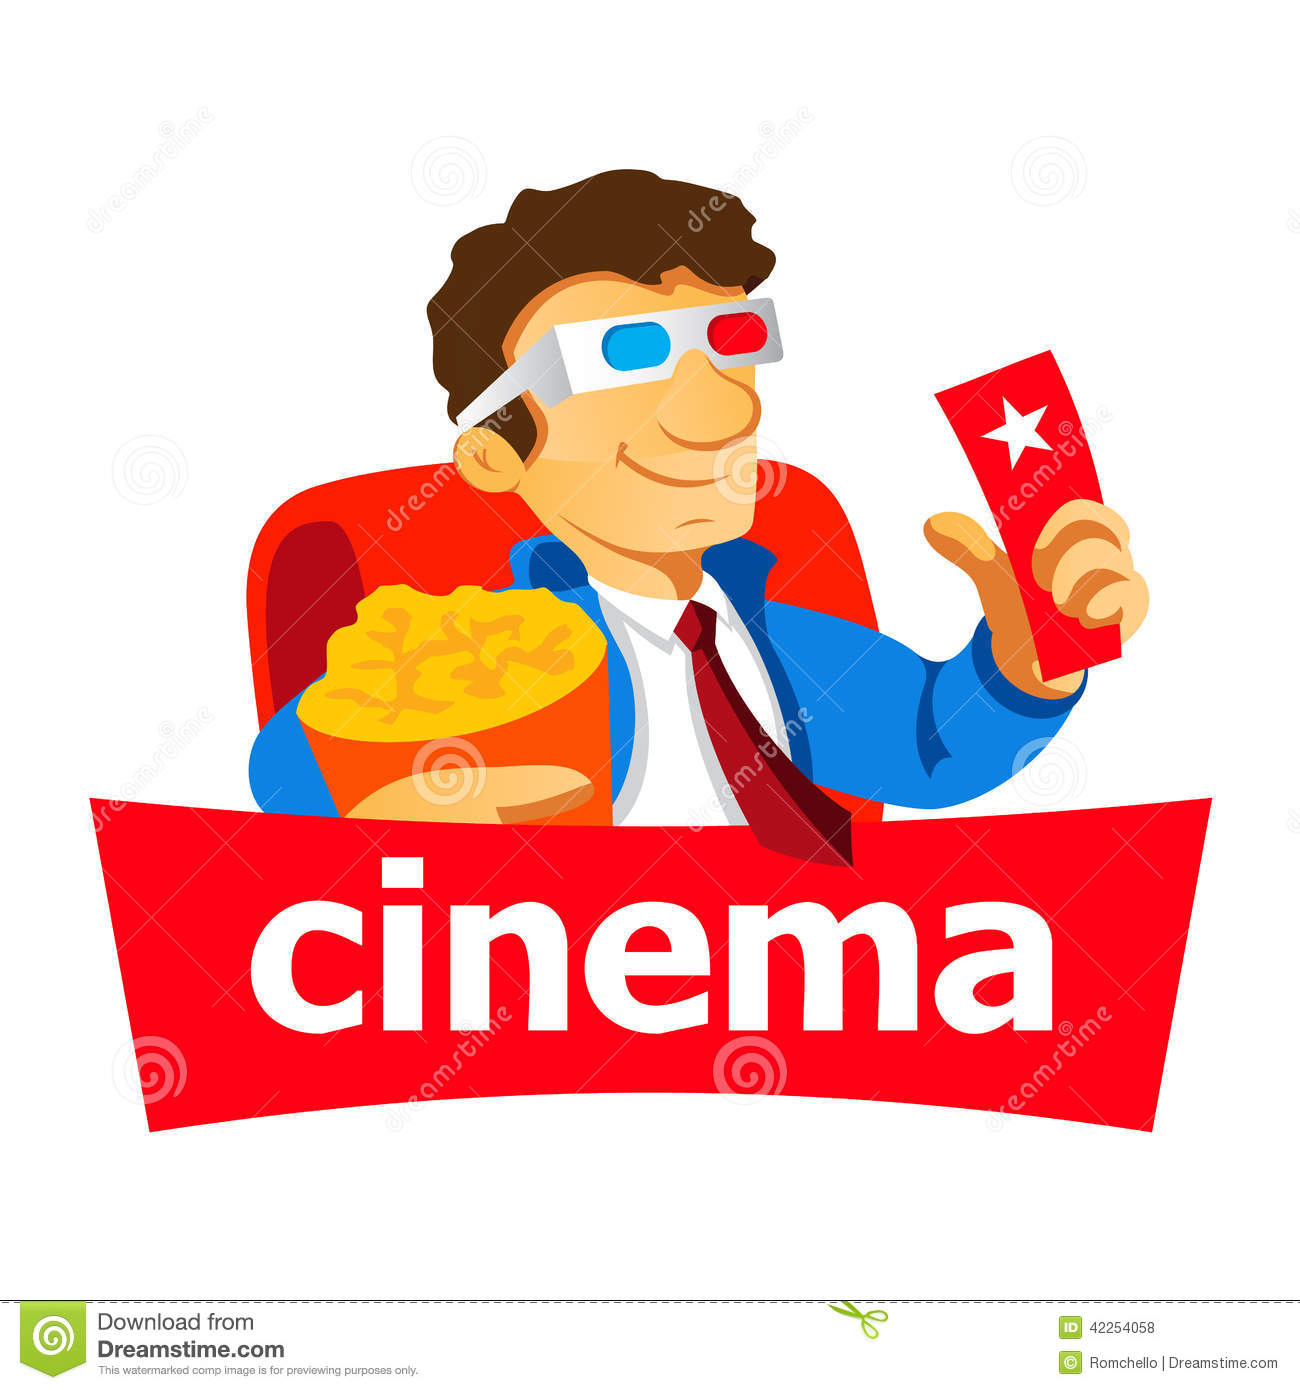 Cinema man logo stock illustration. Image of cartoon ...